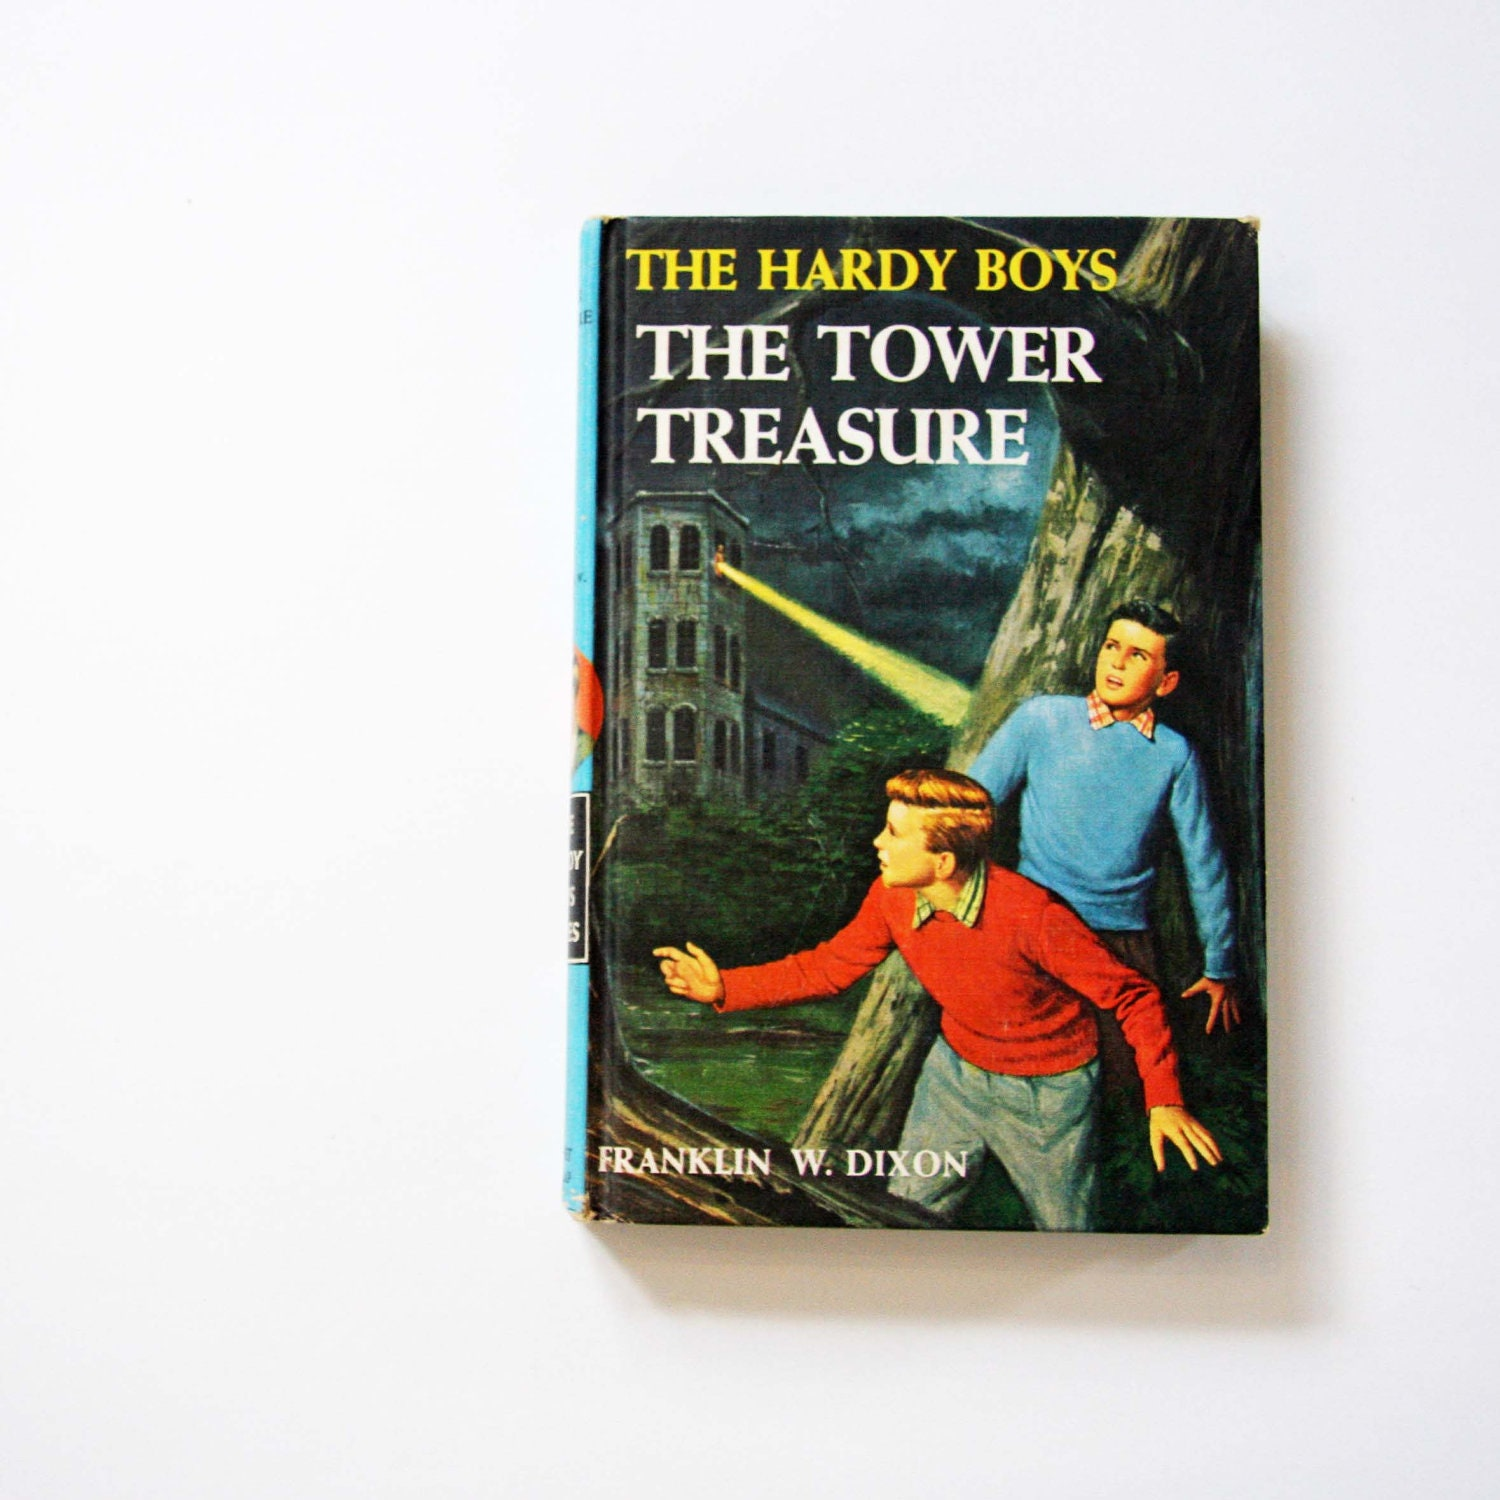 Welcome to The Hardy Boys Online.